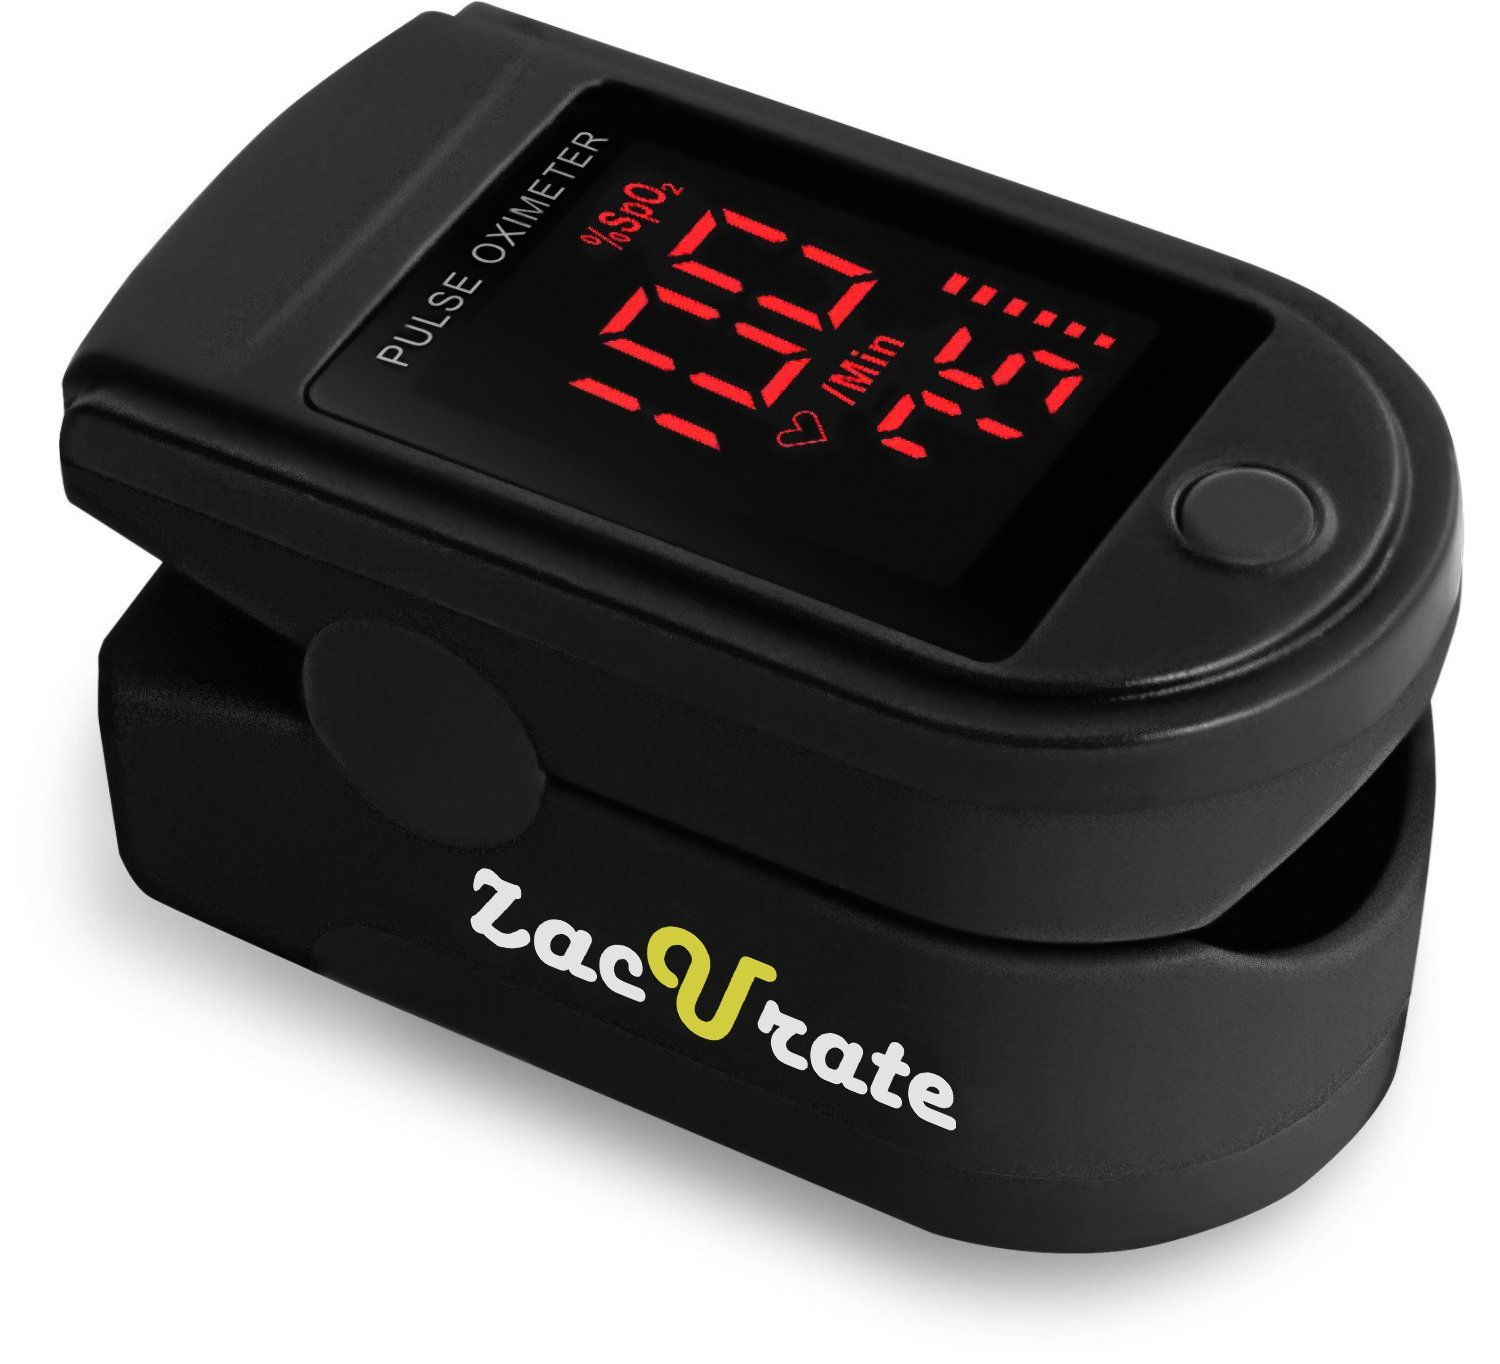 Zacurate Pro Series 500DL Fingertip Pulse Oximeter Blood Oxygen Saturation Monitor with silicon cover, batteries and lanyard (Mystic Black)    ACCURATE AND RELIABLE - Accurately determine your SpO2 (blood oxygen saturation levels), pulse rate and pulse strength in 10 seconds and display it conveniently on a large digital LED display.  SPORT/HEALTH ENTHUSIASTS - For sports enthusiasts like mountain climbers, skiers, bikers or anyone interested in measuring their SpO2 and pulse rate. SpO2 and Pulse Rate now faces instead of away from the user for easy read.  PRO SERIES -Manufactured according to CE and FDA standards for pulse oximeters used by doctors and other health professionals. The ONLY LED pulse oximeter that can read and display up to 100% for SpO2 value.  SUITABLE FOR ALL AGES - Finger chamber with SMART Spring System. Accommodates wide range of finger sizes.